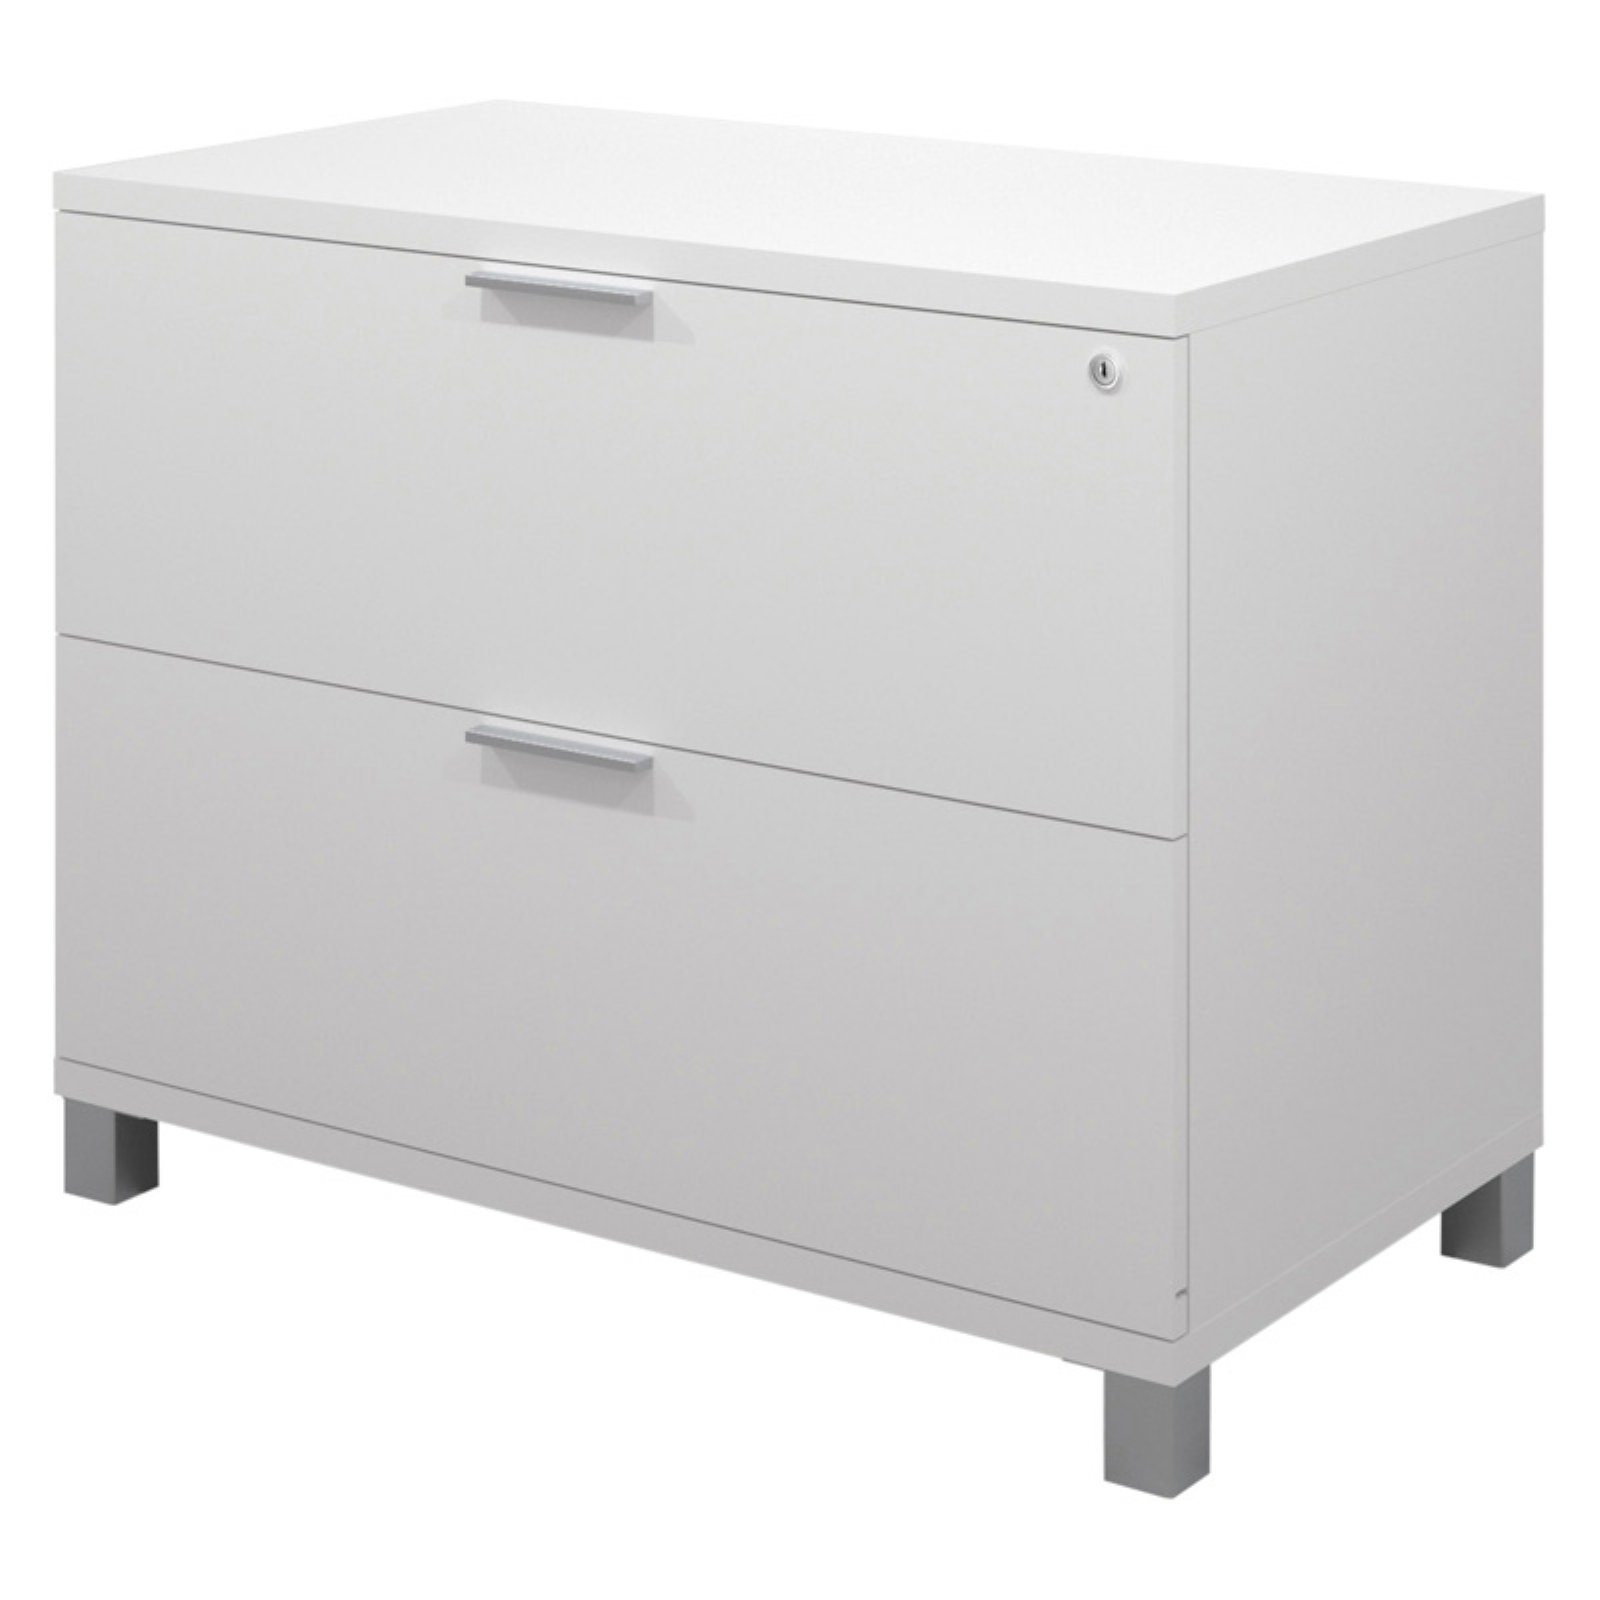 Bestar Pro Linea Assembled Lateral File White Filing Cabinet Cabinets For Sale Office File Cabinets Lateral file cabinets for sale